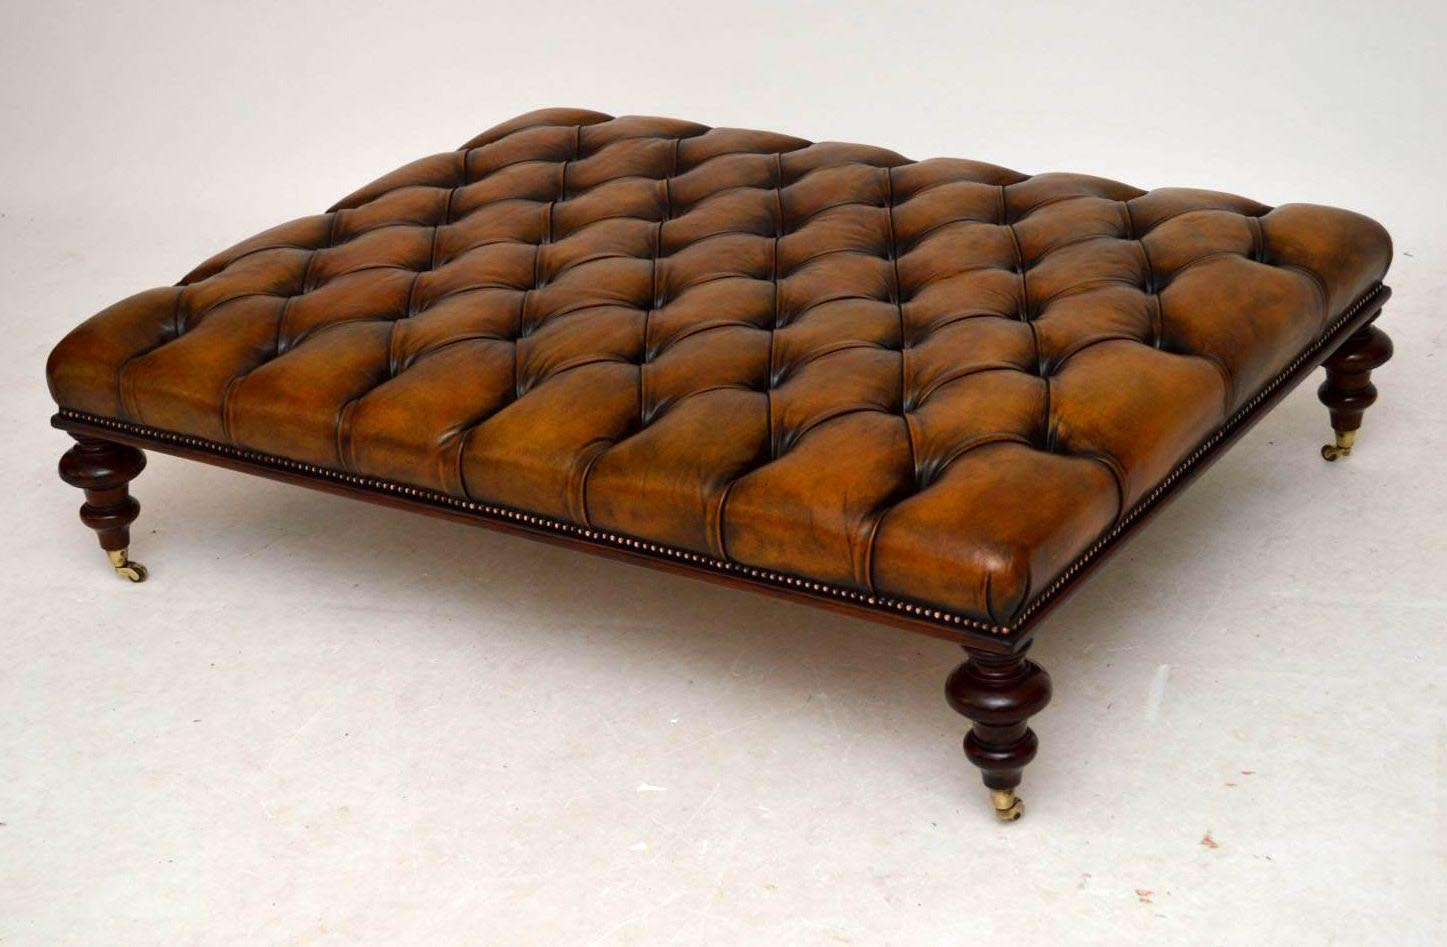 Antique leather top coffee table coffee table design ideas antique leather top coffee table geotapseo Images